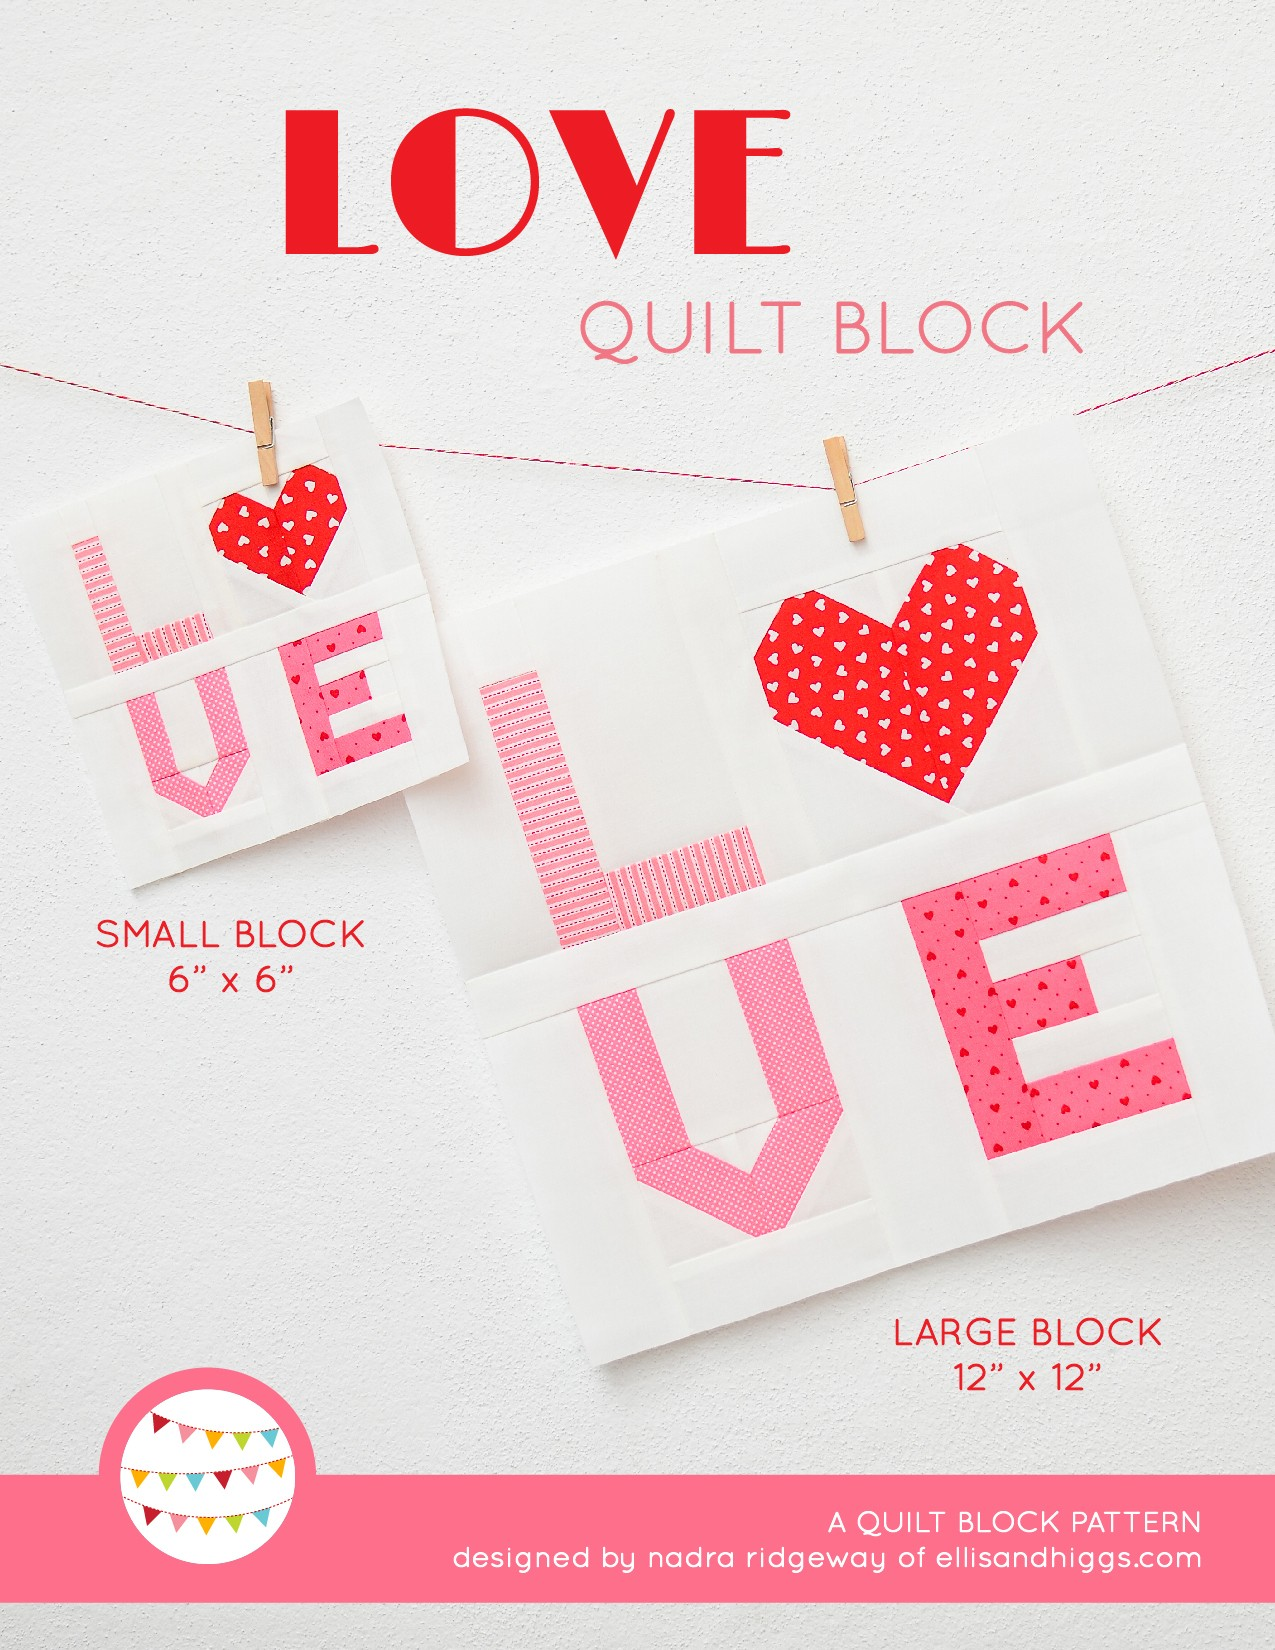 Love Sign quilt block in two sizes hanging on a wall